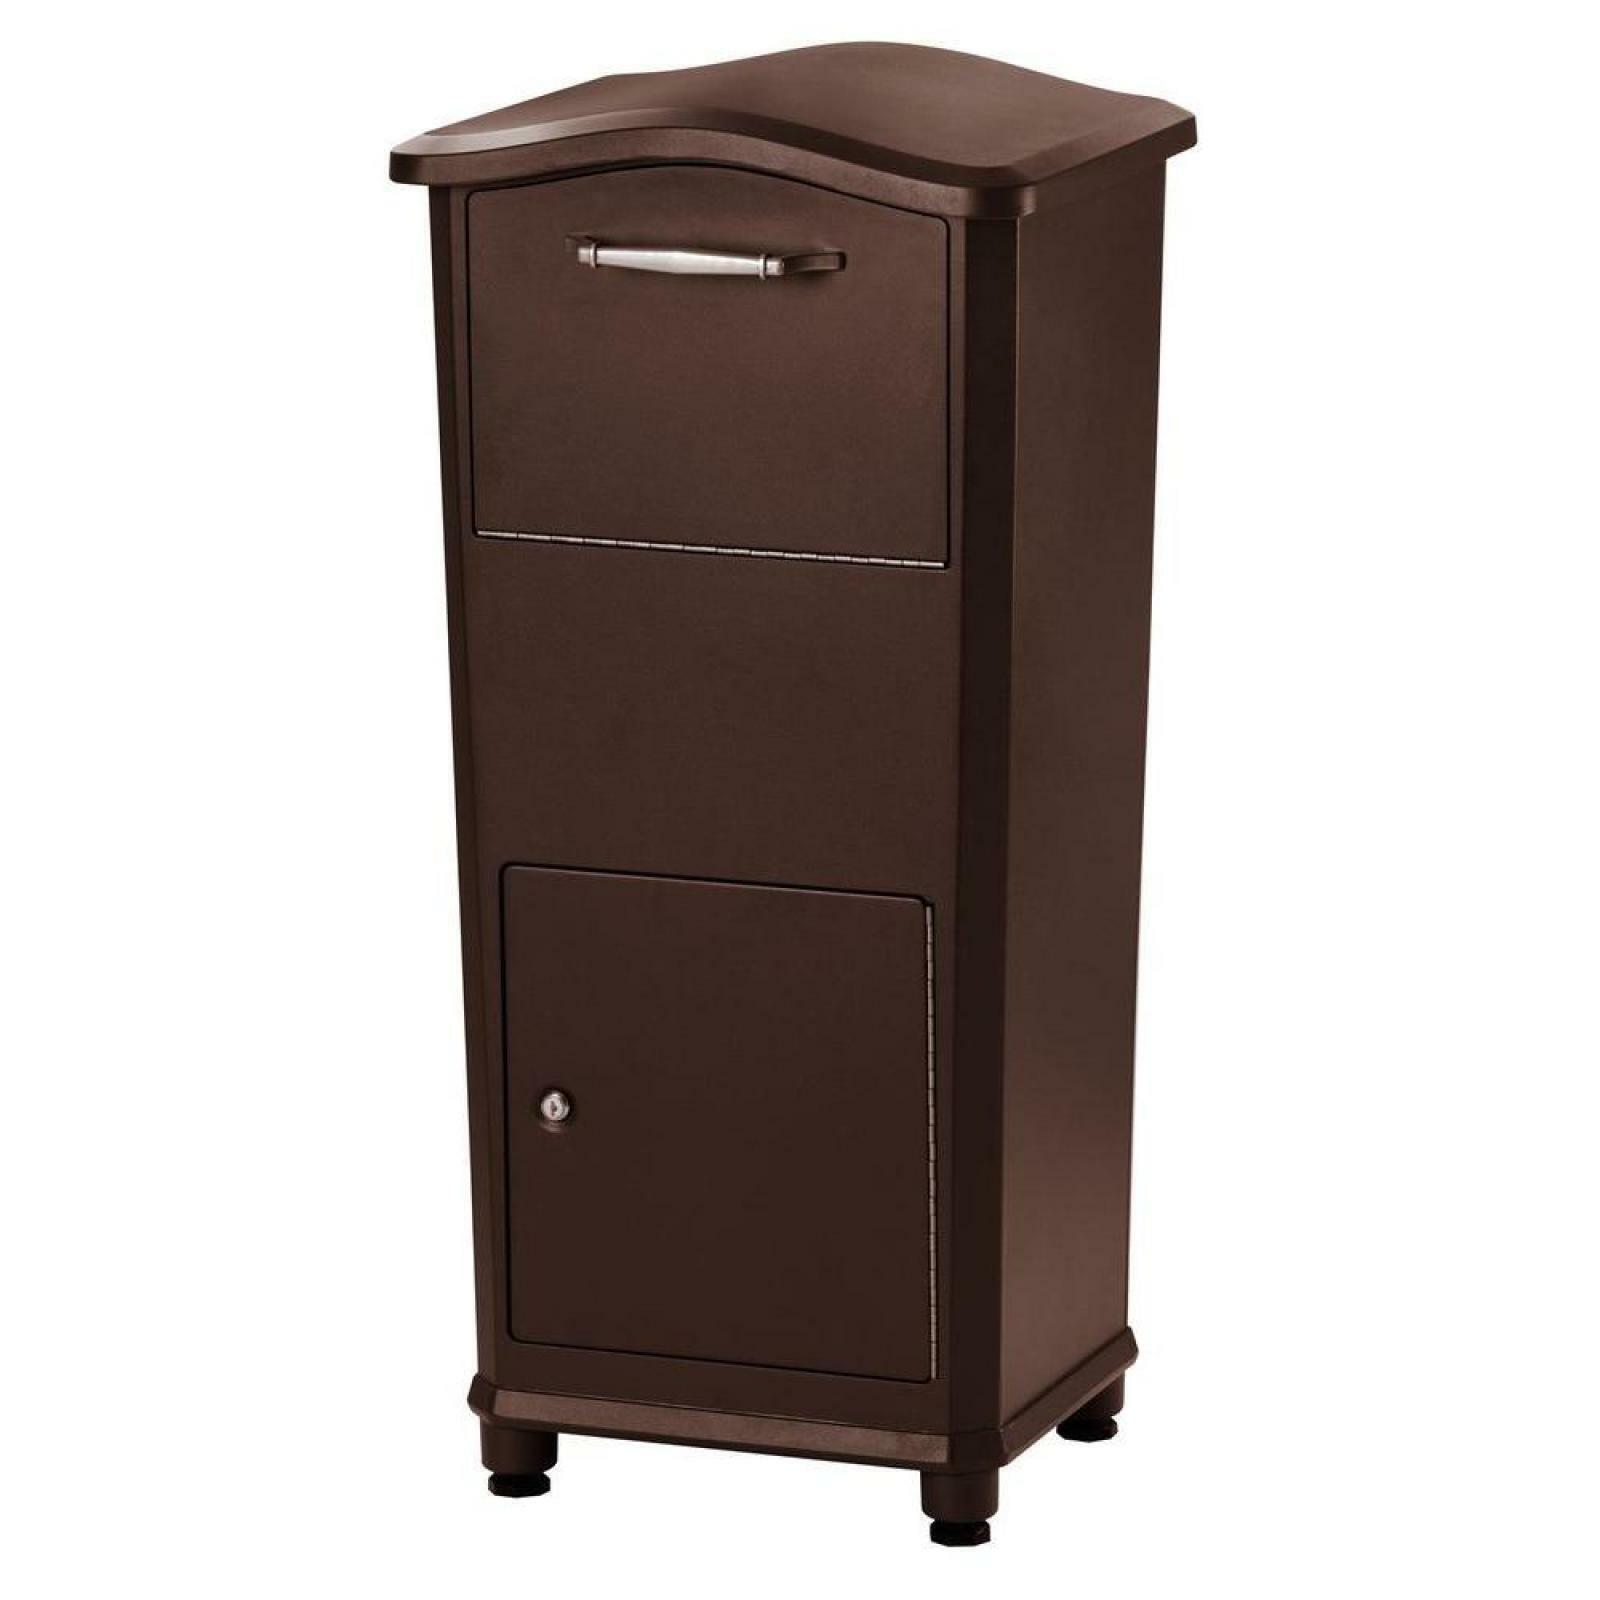 Elephantrunk Parcel Drop Box in Oil Rubbed Bronze Cast Aluminum Stainless steel